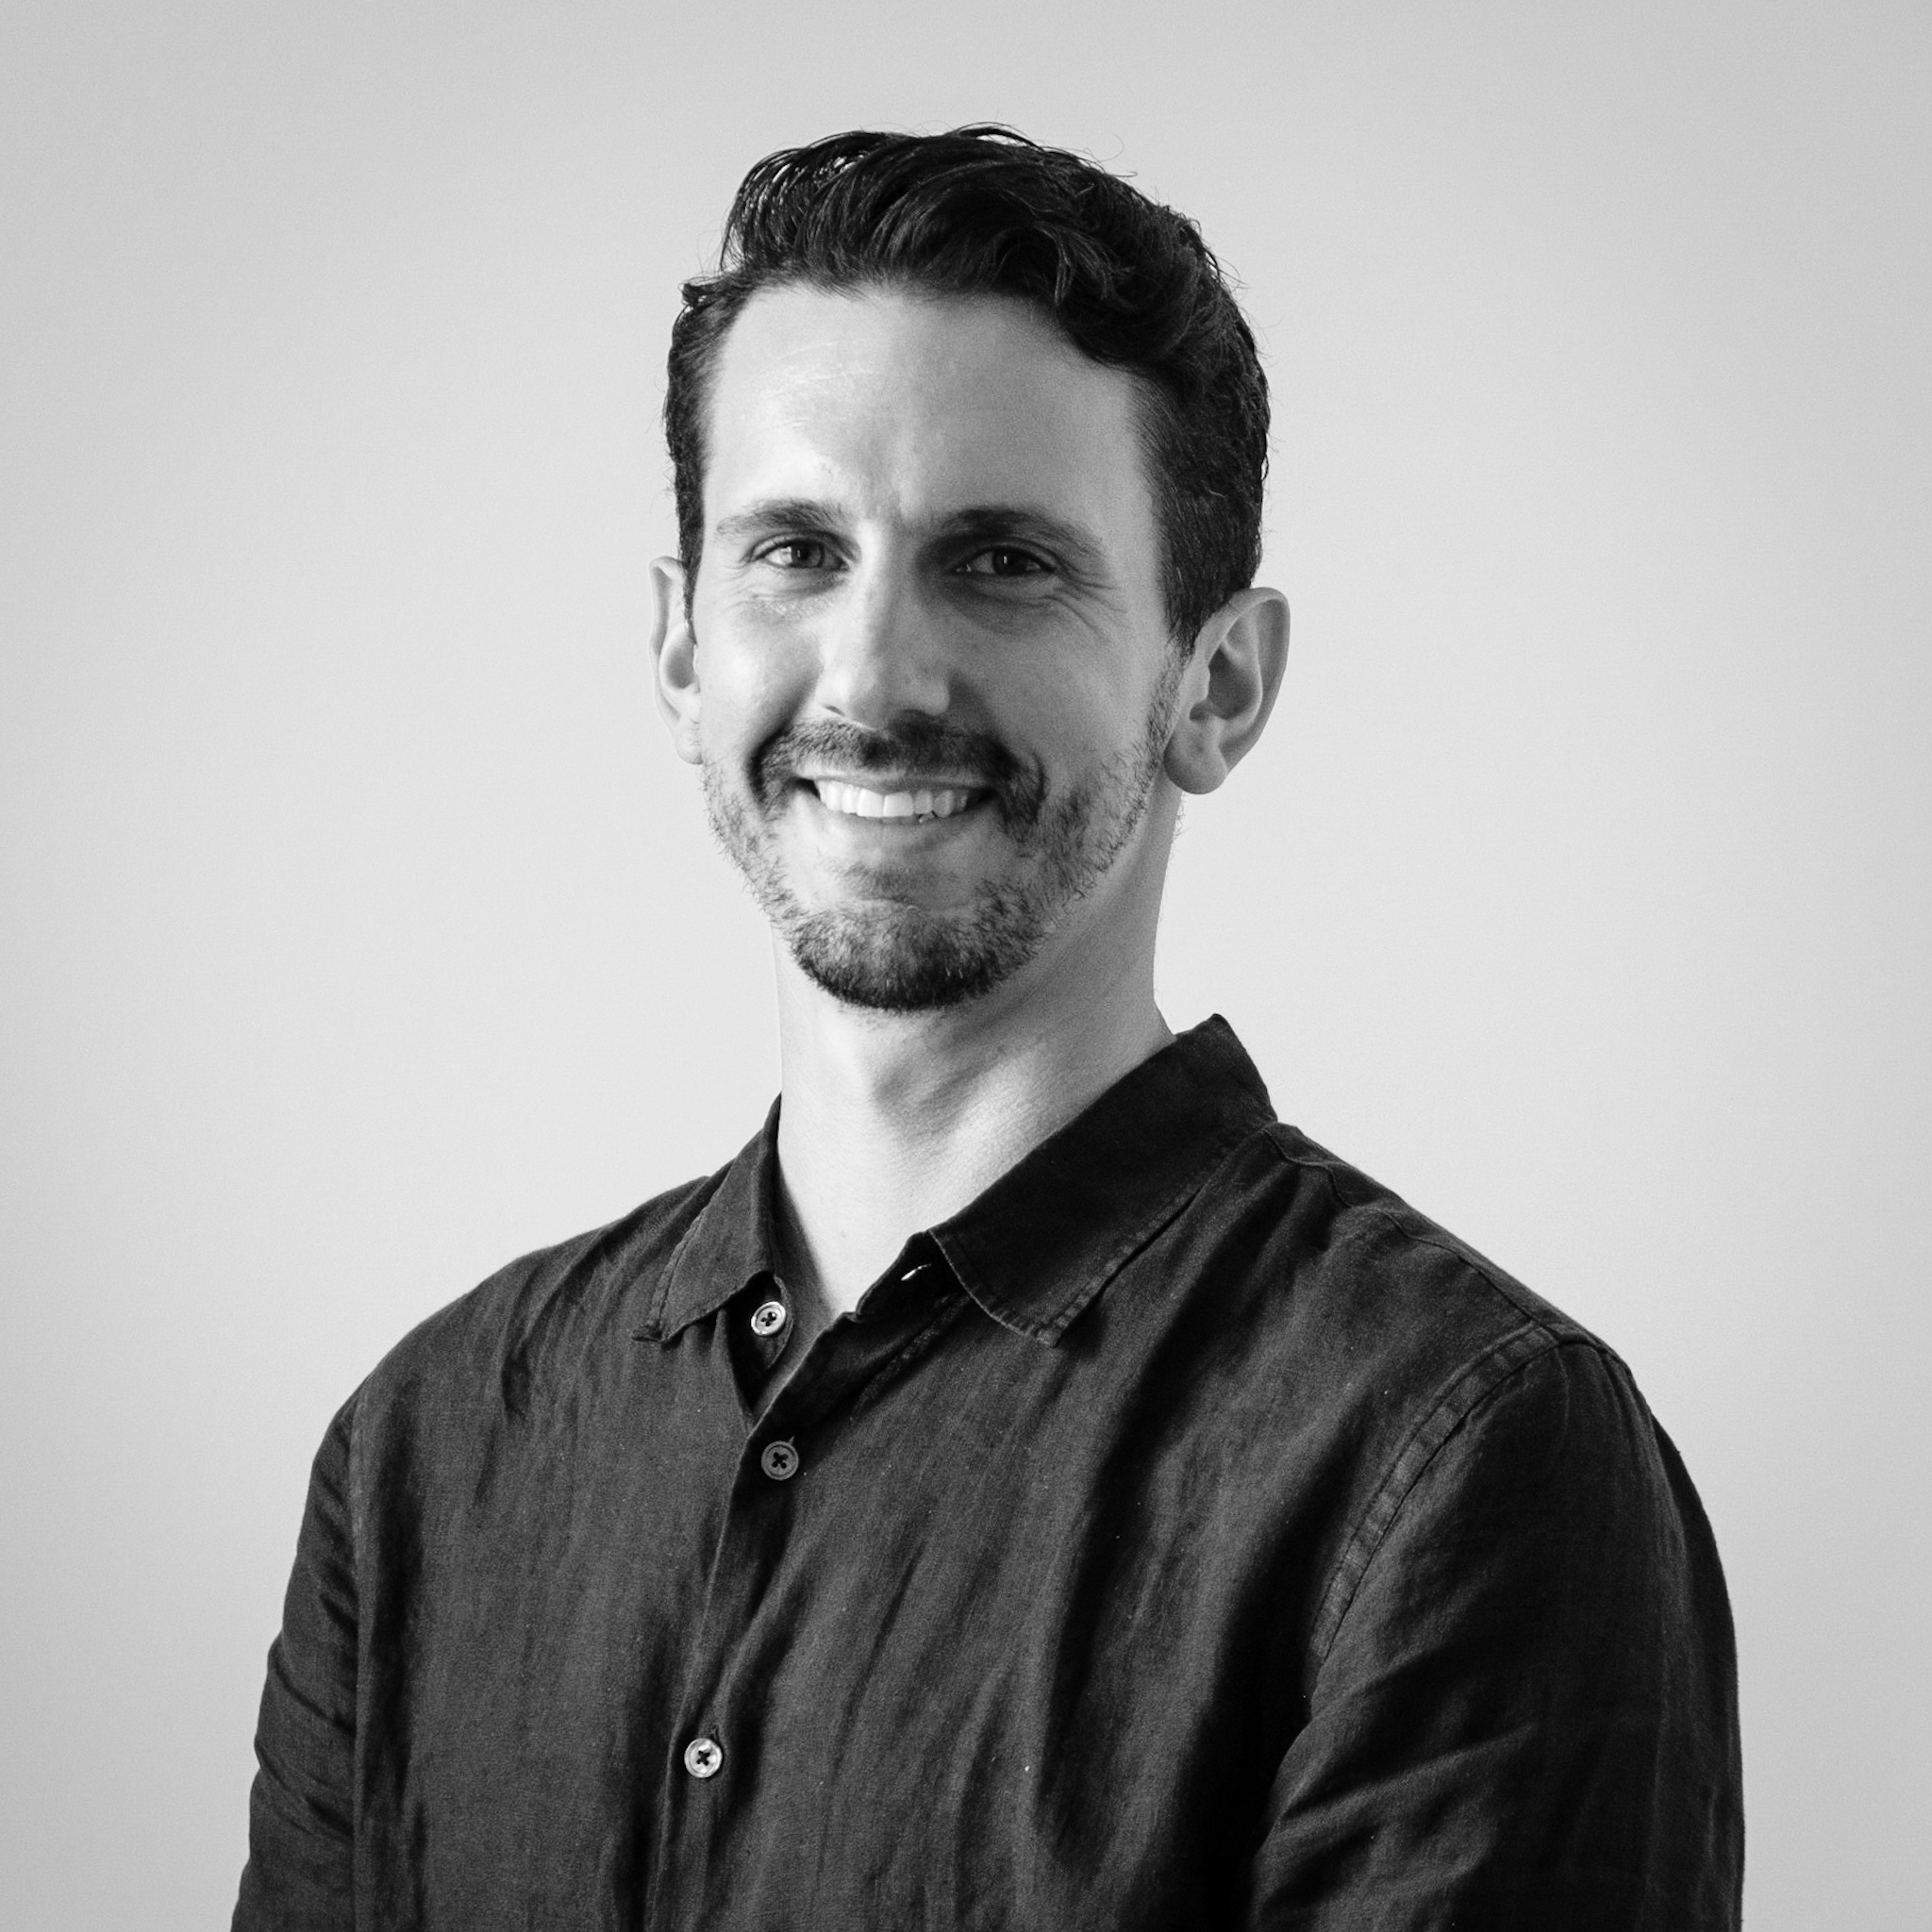 Bohemia appoints former Spark Foundry strategy director Max Broer as national strategy director